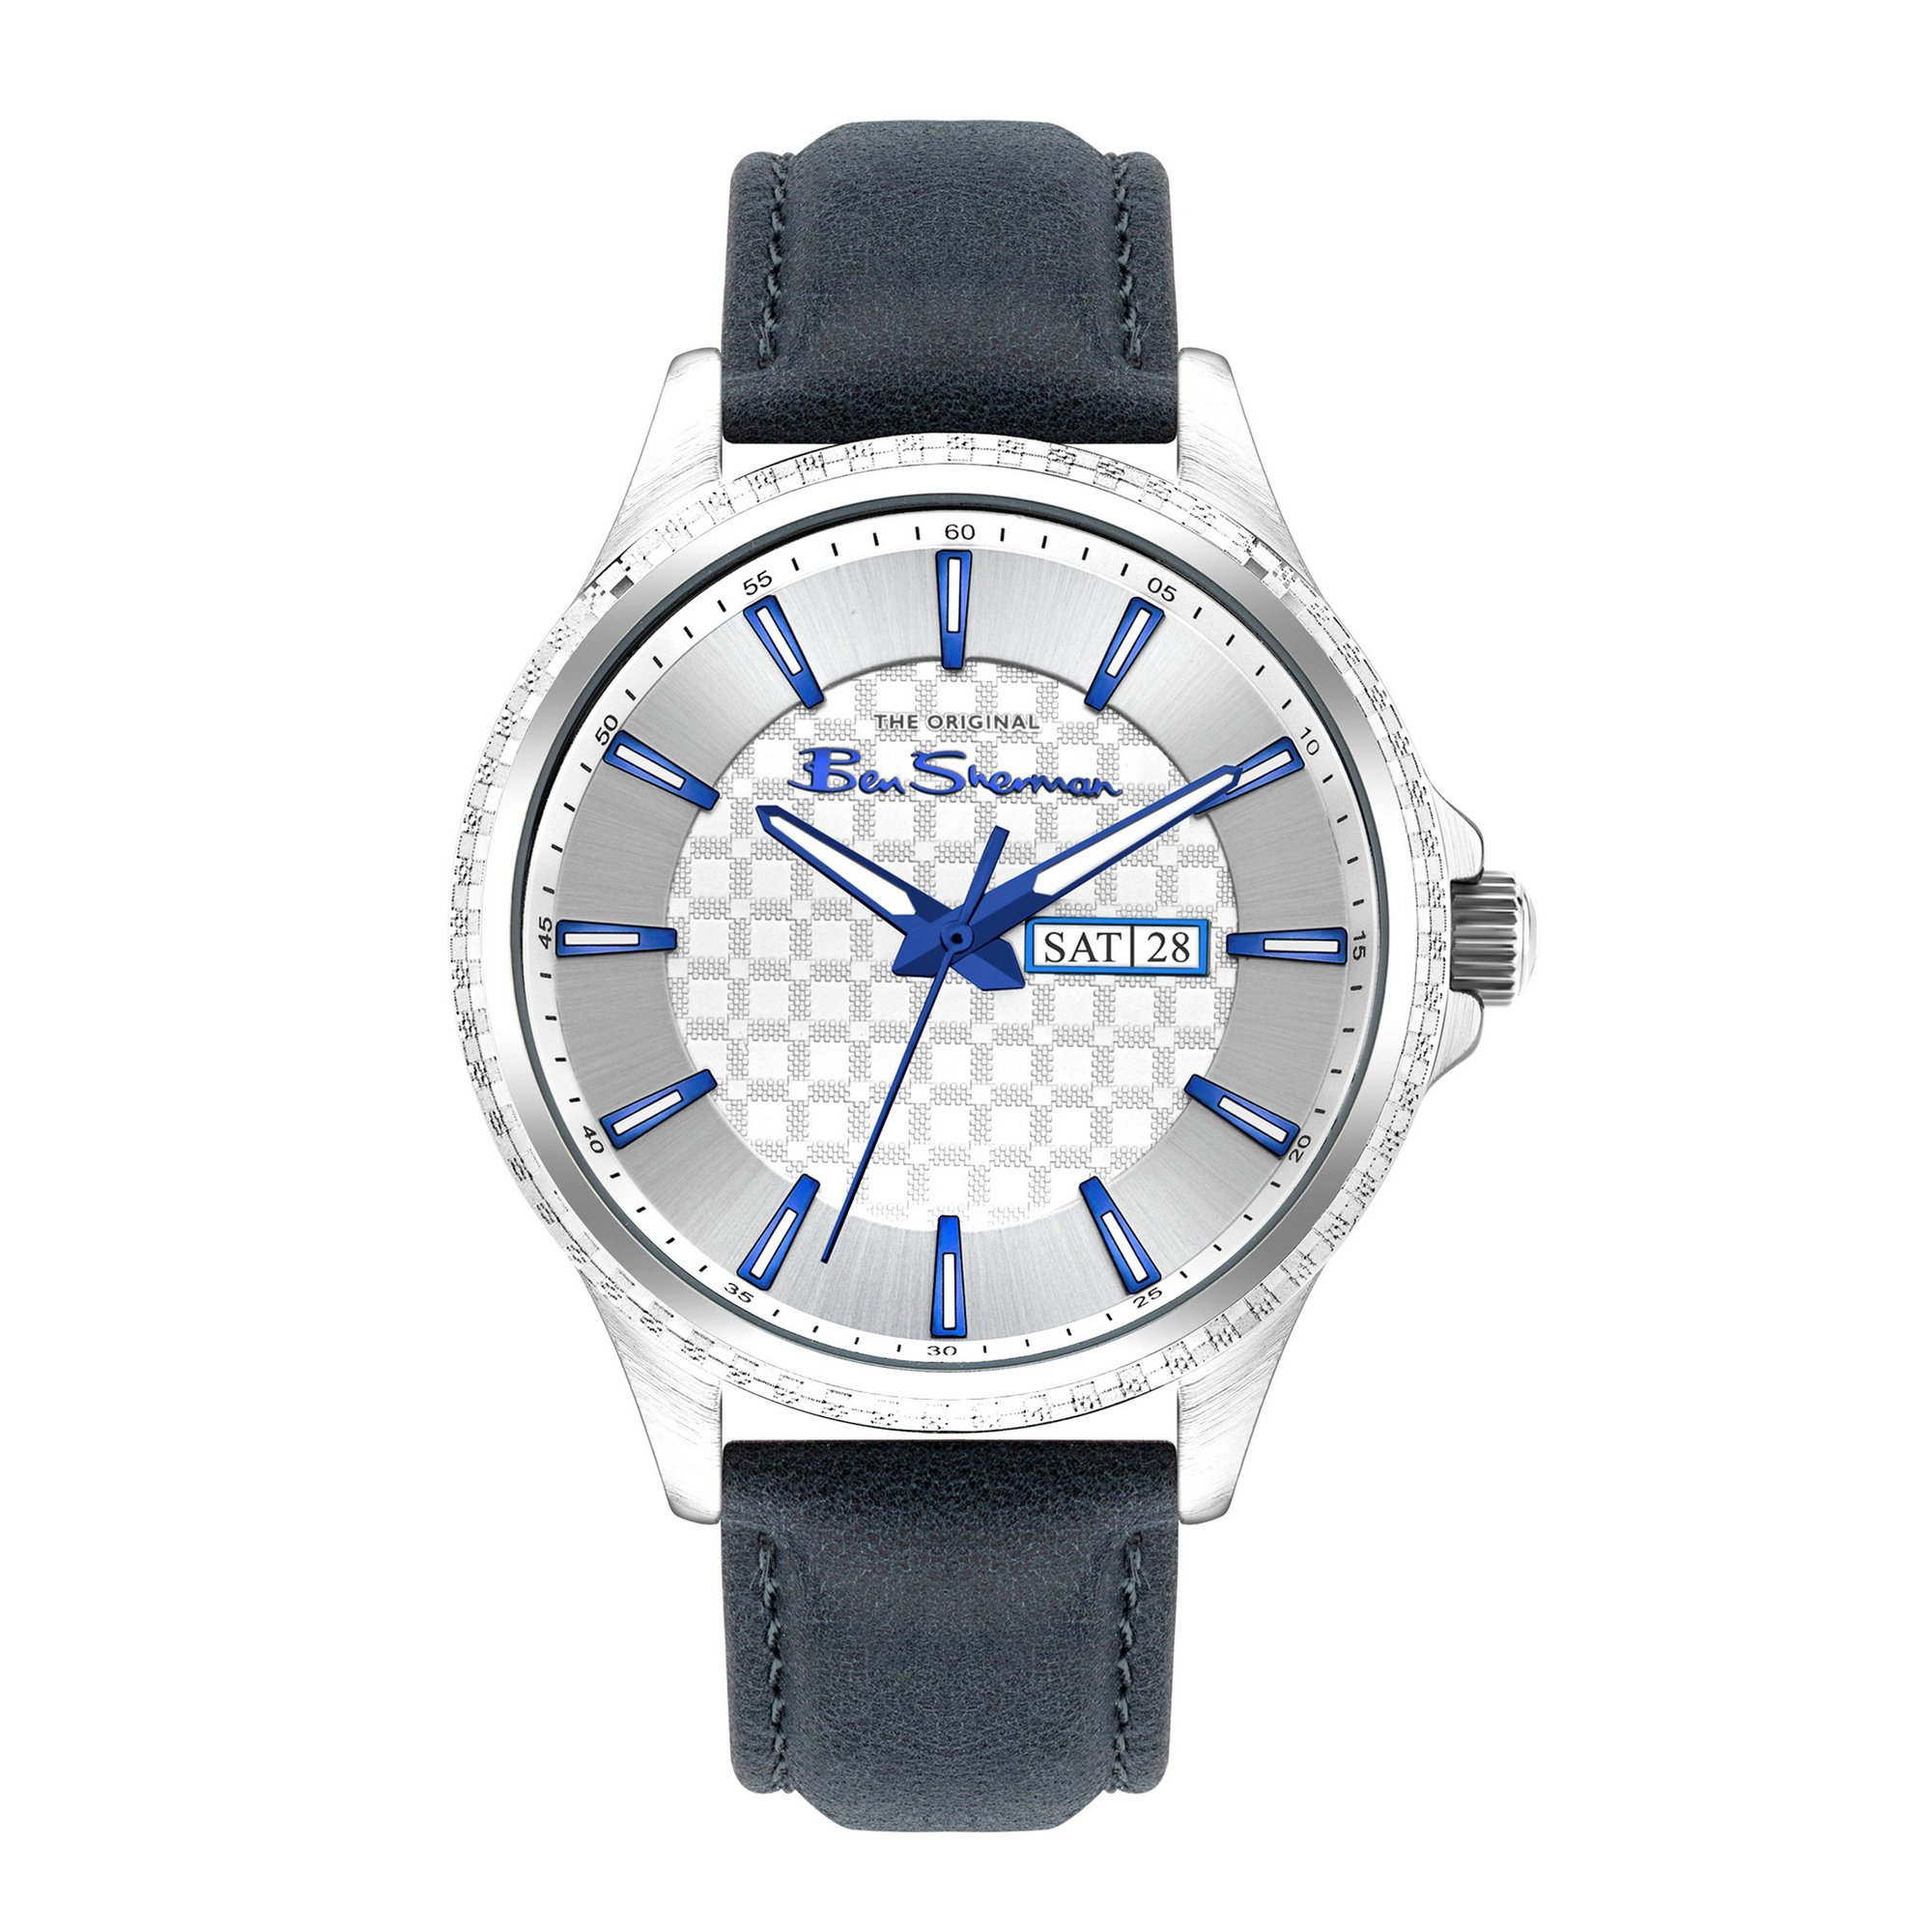 Image of Ben Sherman Watch with a Blue Strap and Silver Dial